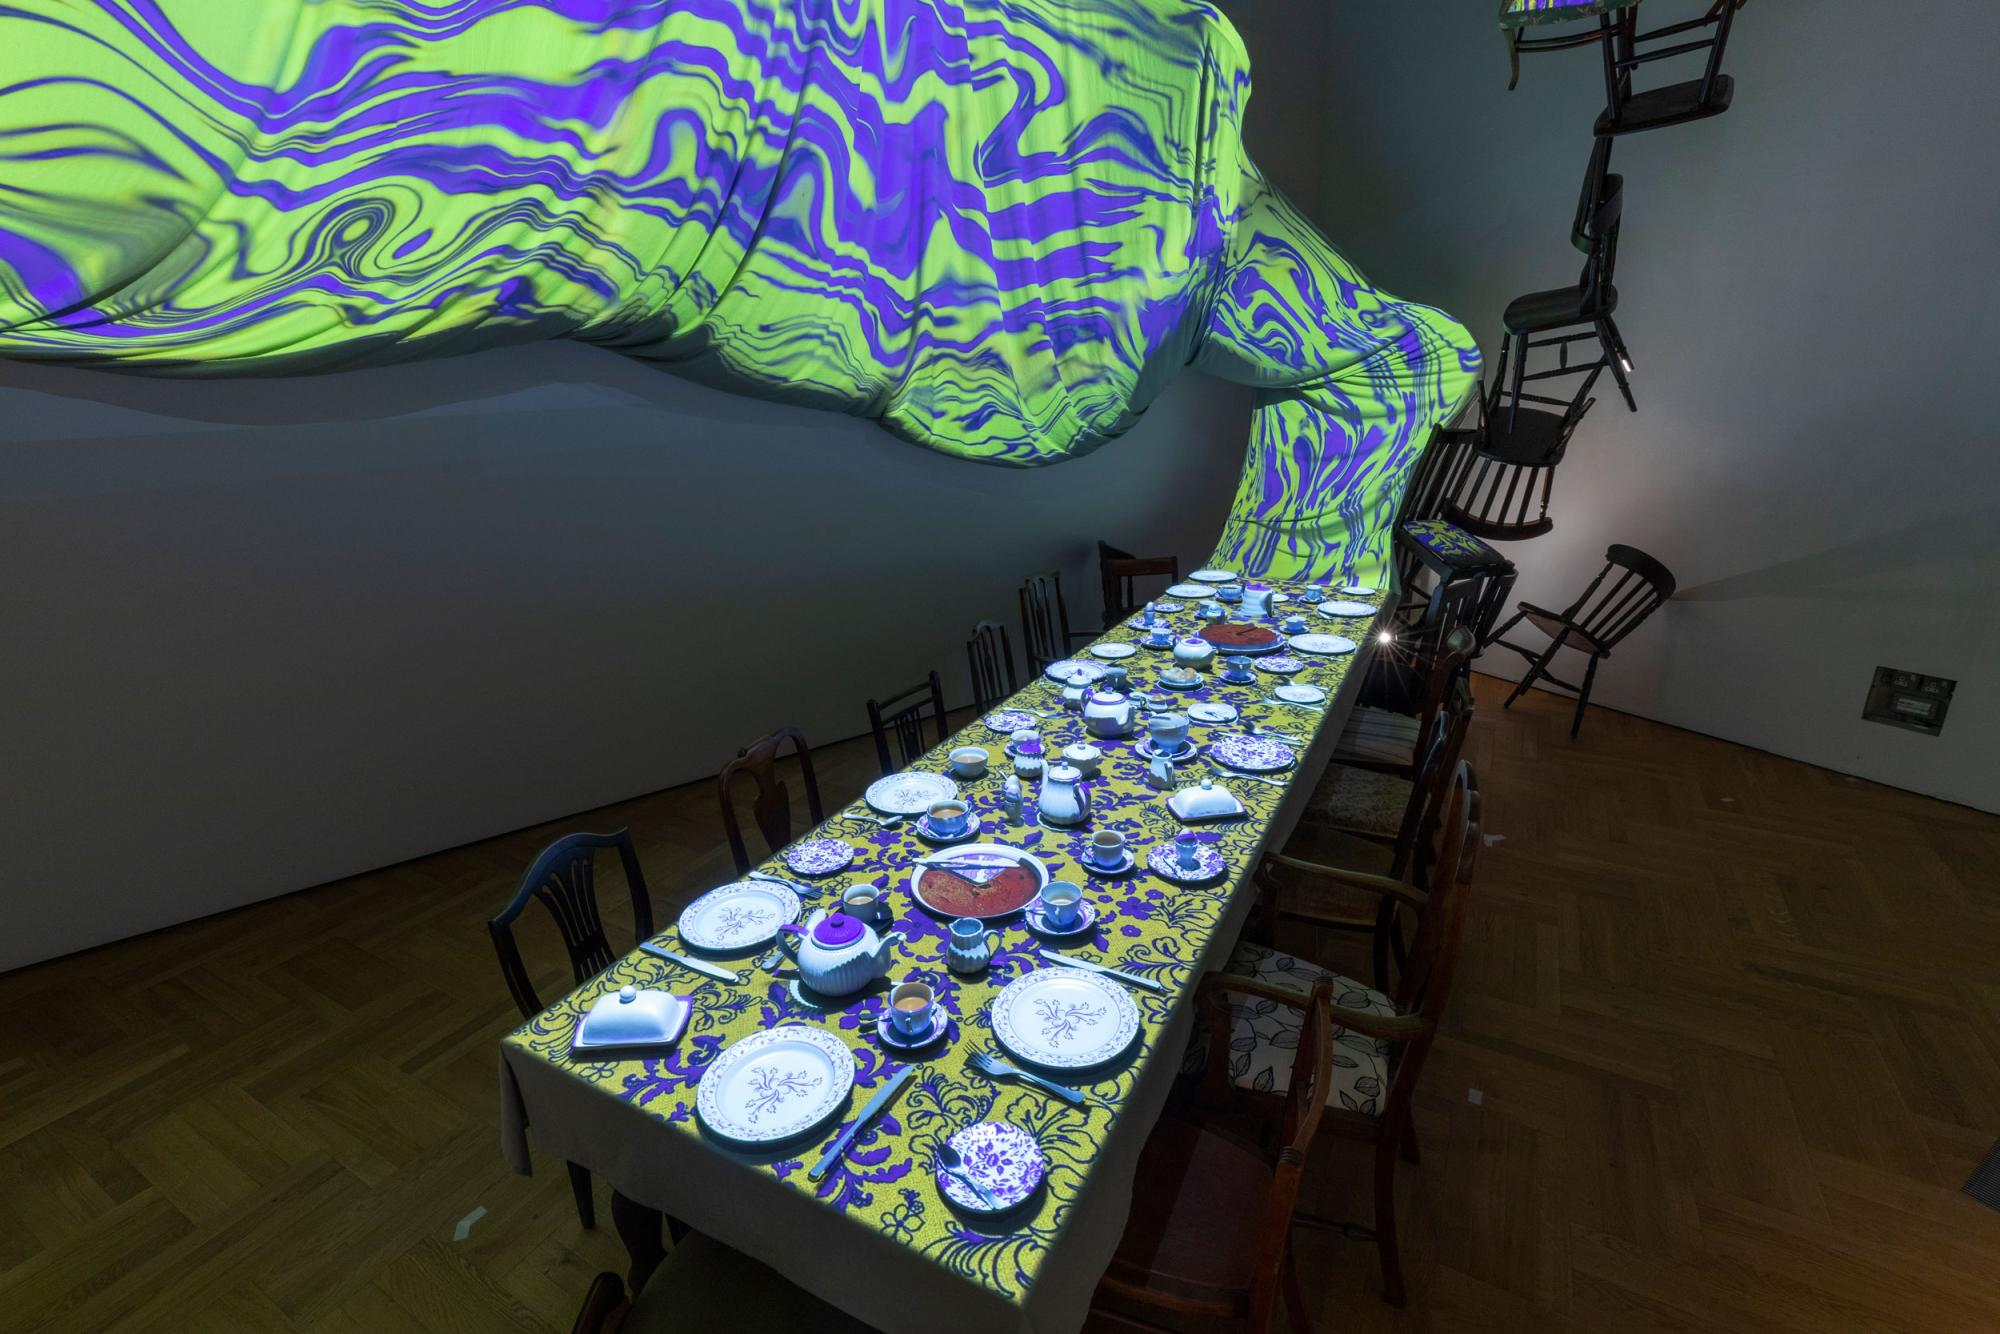 Alice-Curiouser-and-Curiouser,-May-2021,-Installation-Image-(c)-Victoria-and-Albert-Museum,-London-(27).jpg